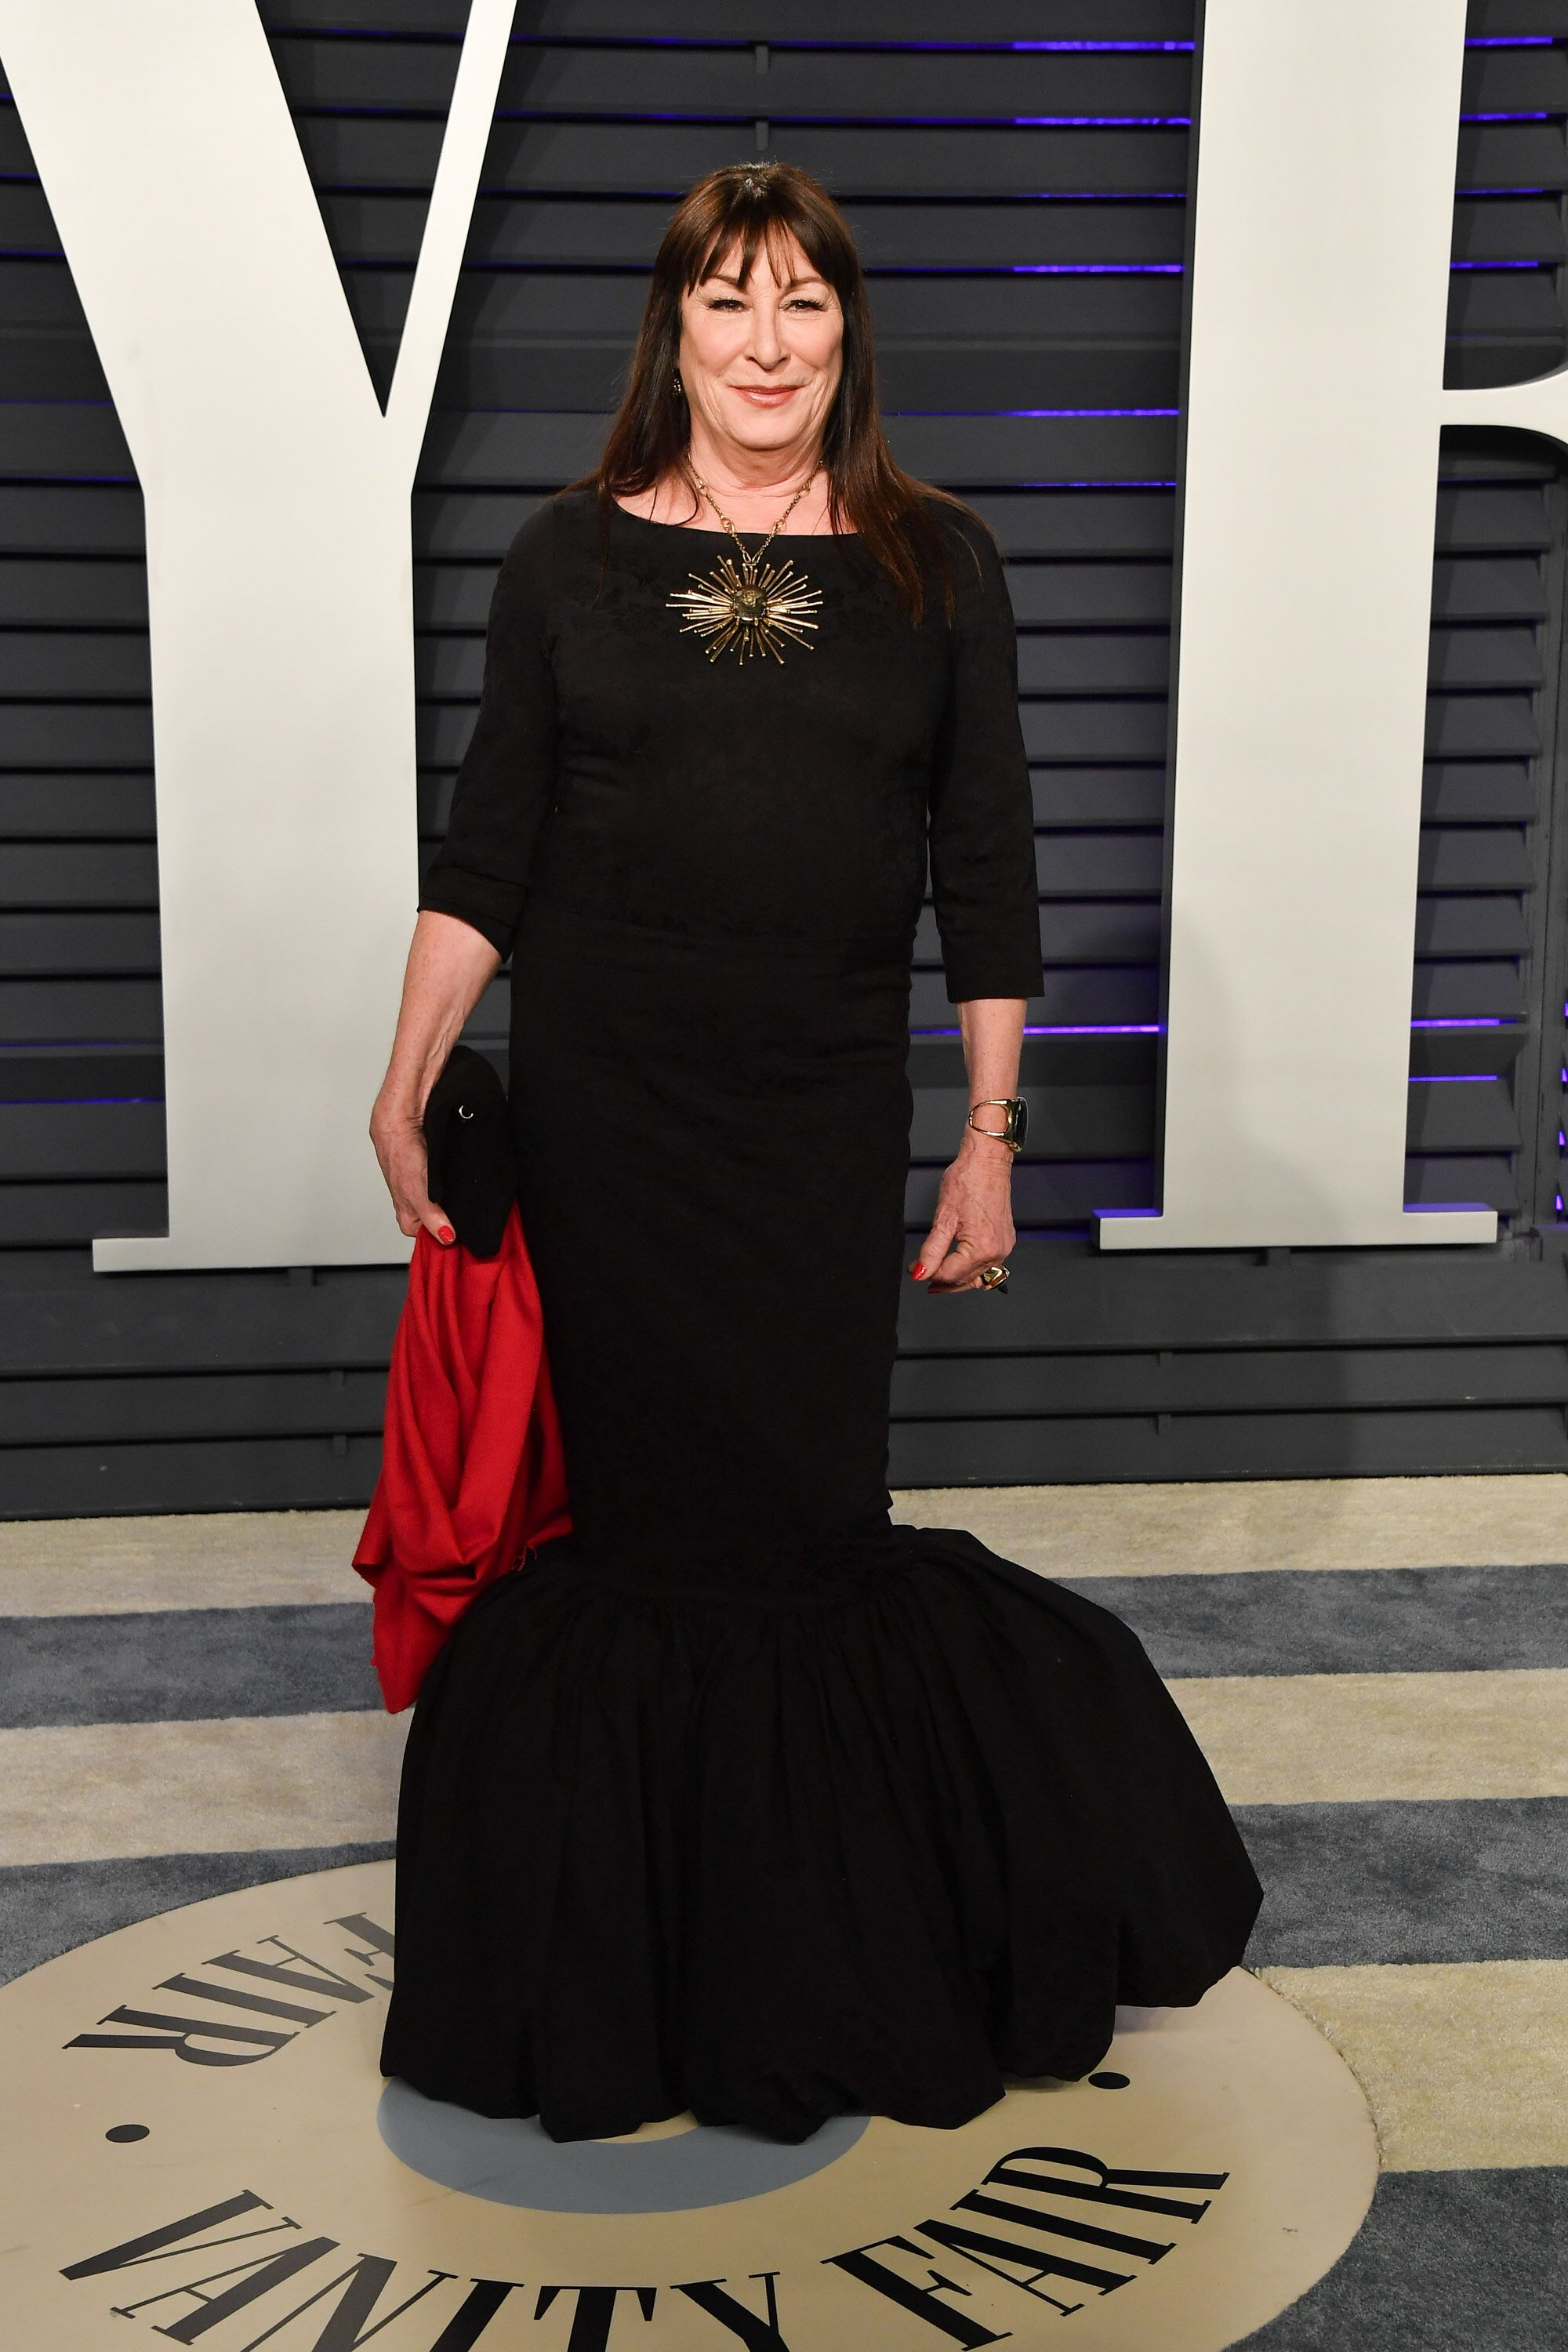 Anjelica Huston attends the 2019 Vanity Fair Oscar Party hosted by Radhika Jones at Wallis Annenberg Center   Getty Images / Global Images Ukraine